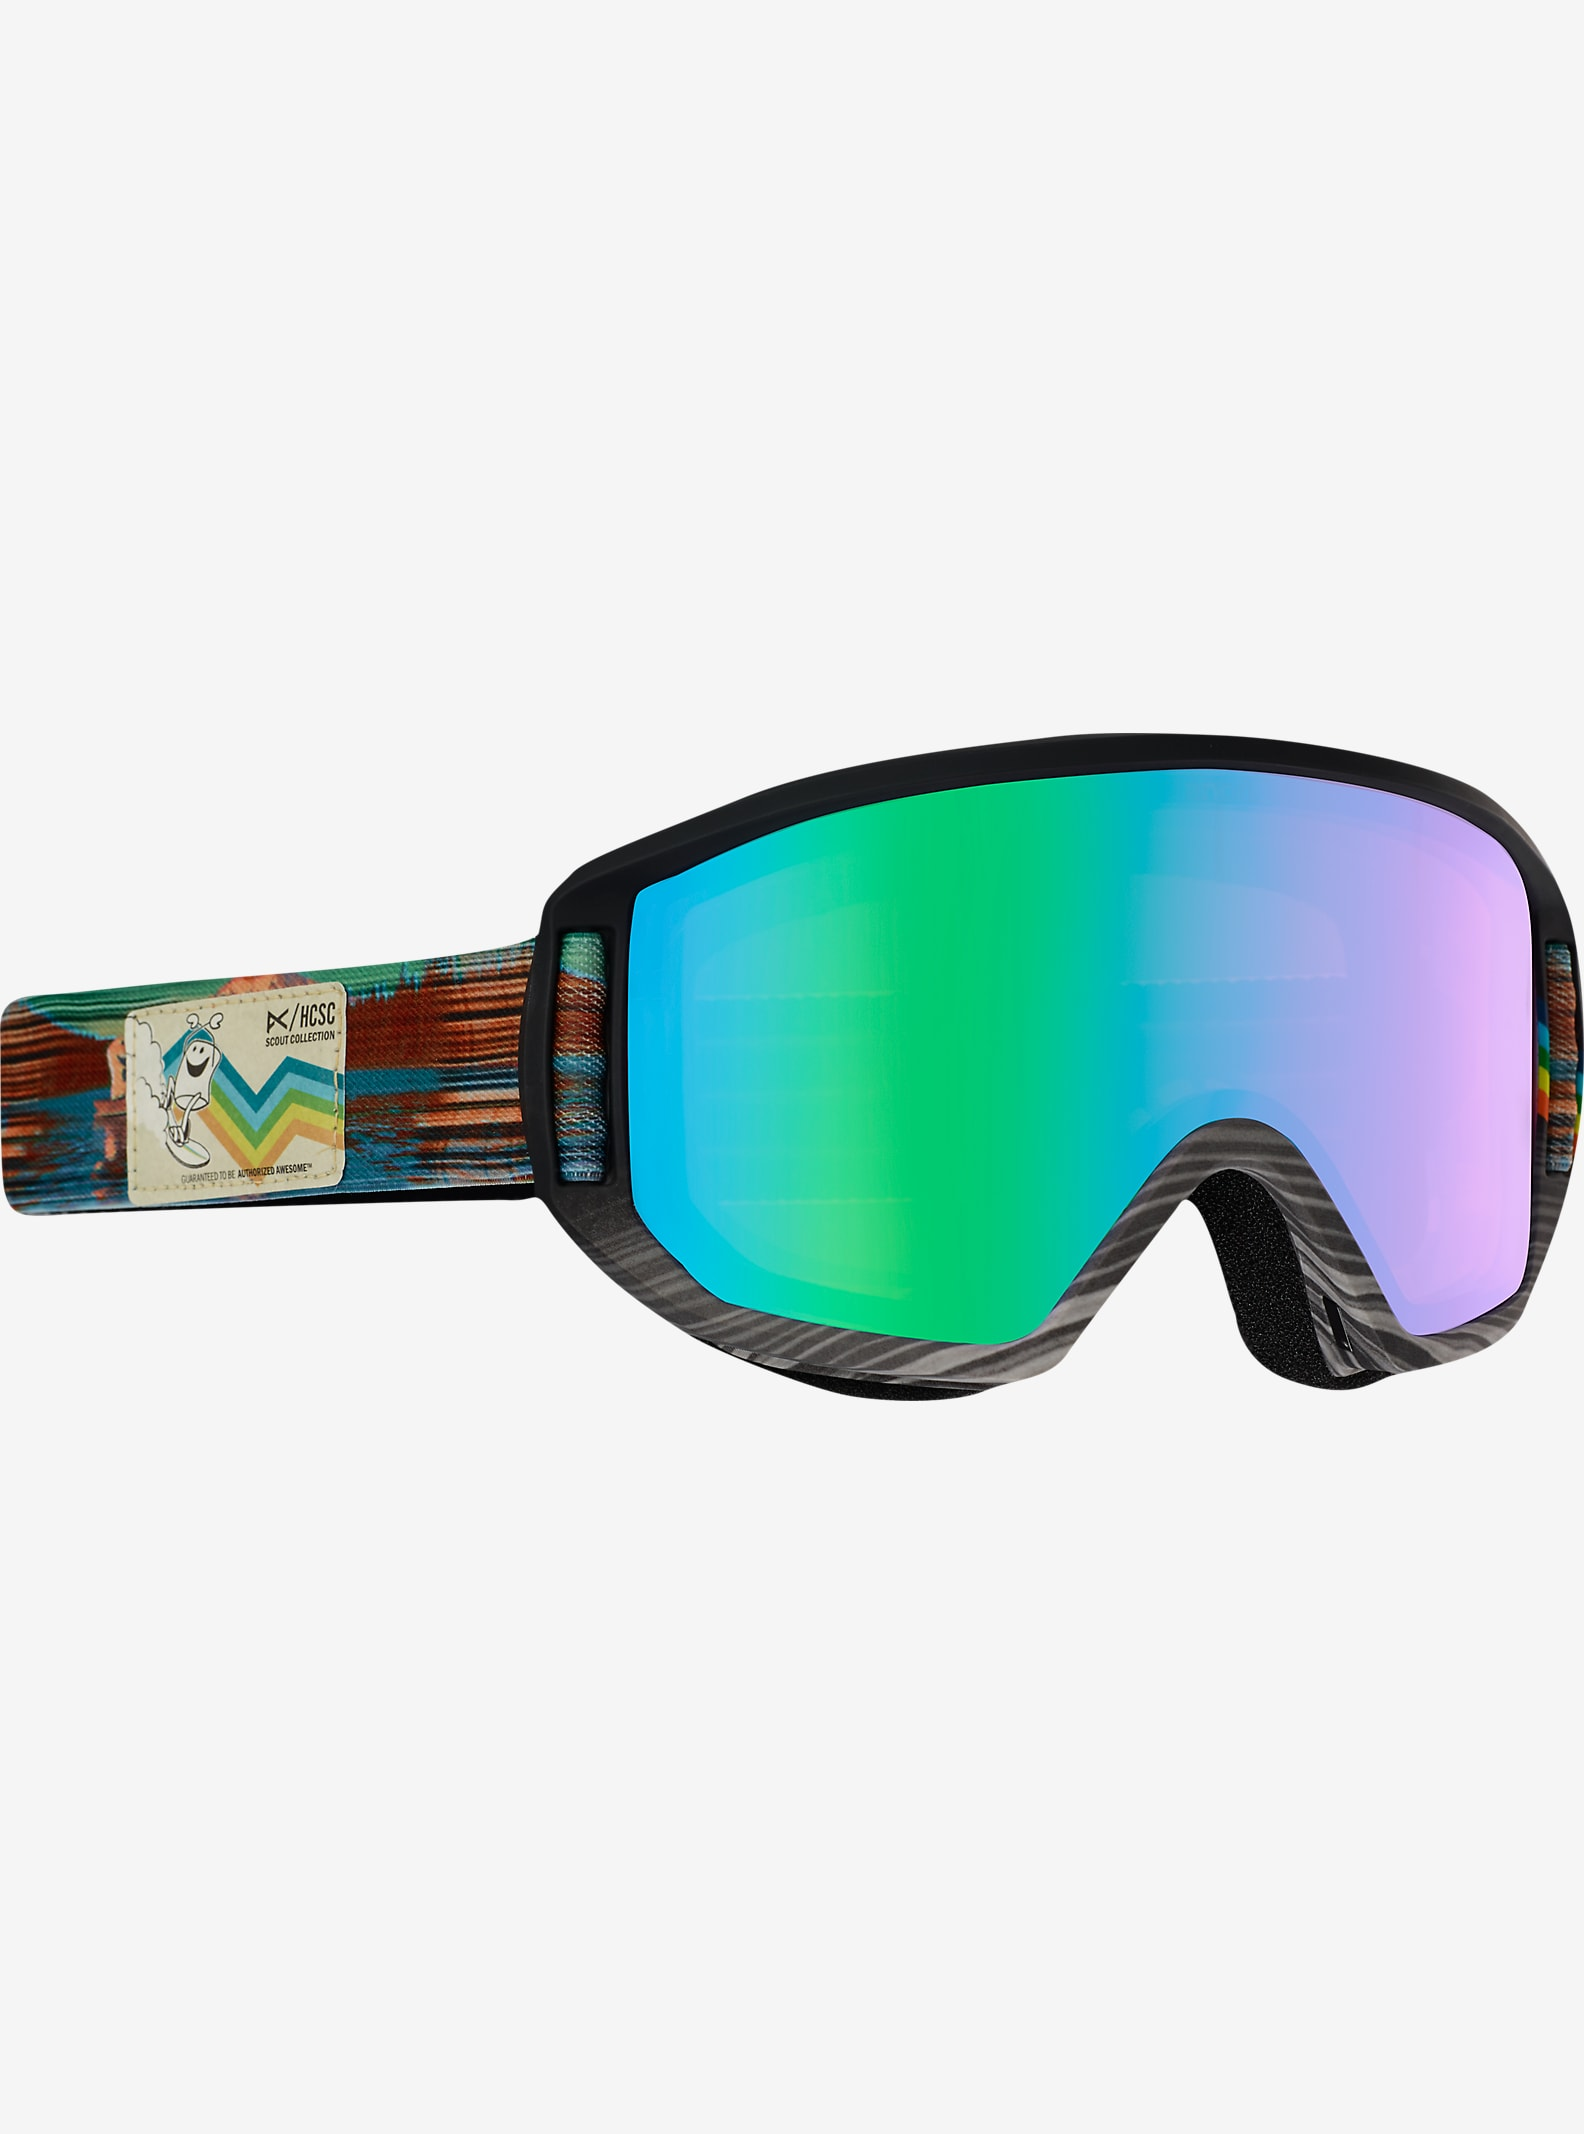 HCSC x anon. Relapse Goggle shown in Frame: HCSC, Lens: Green Solex